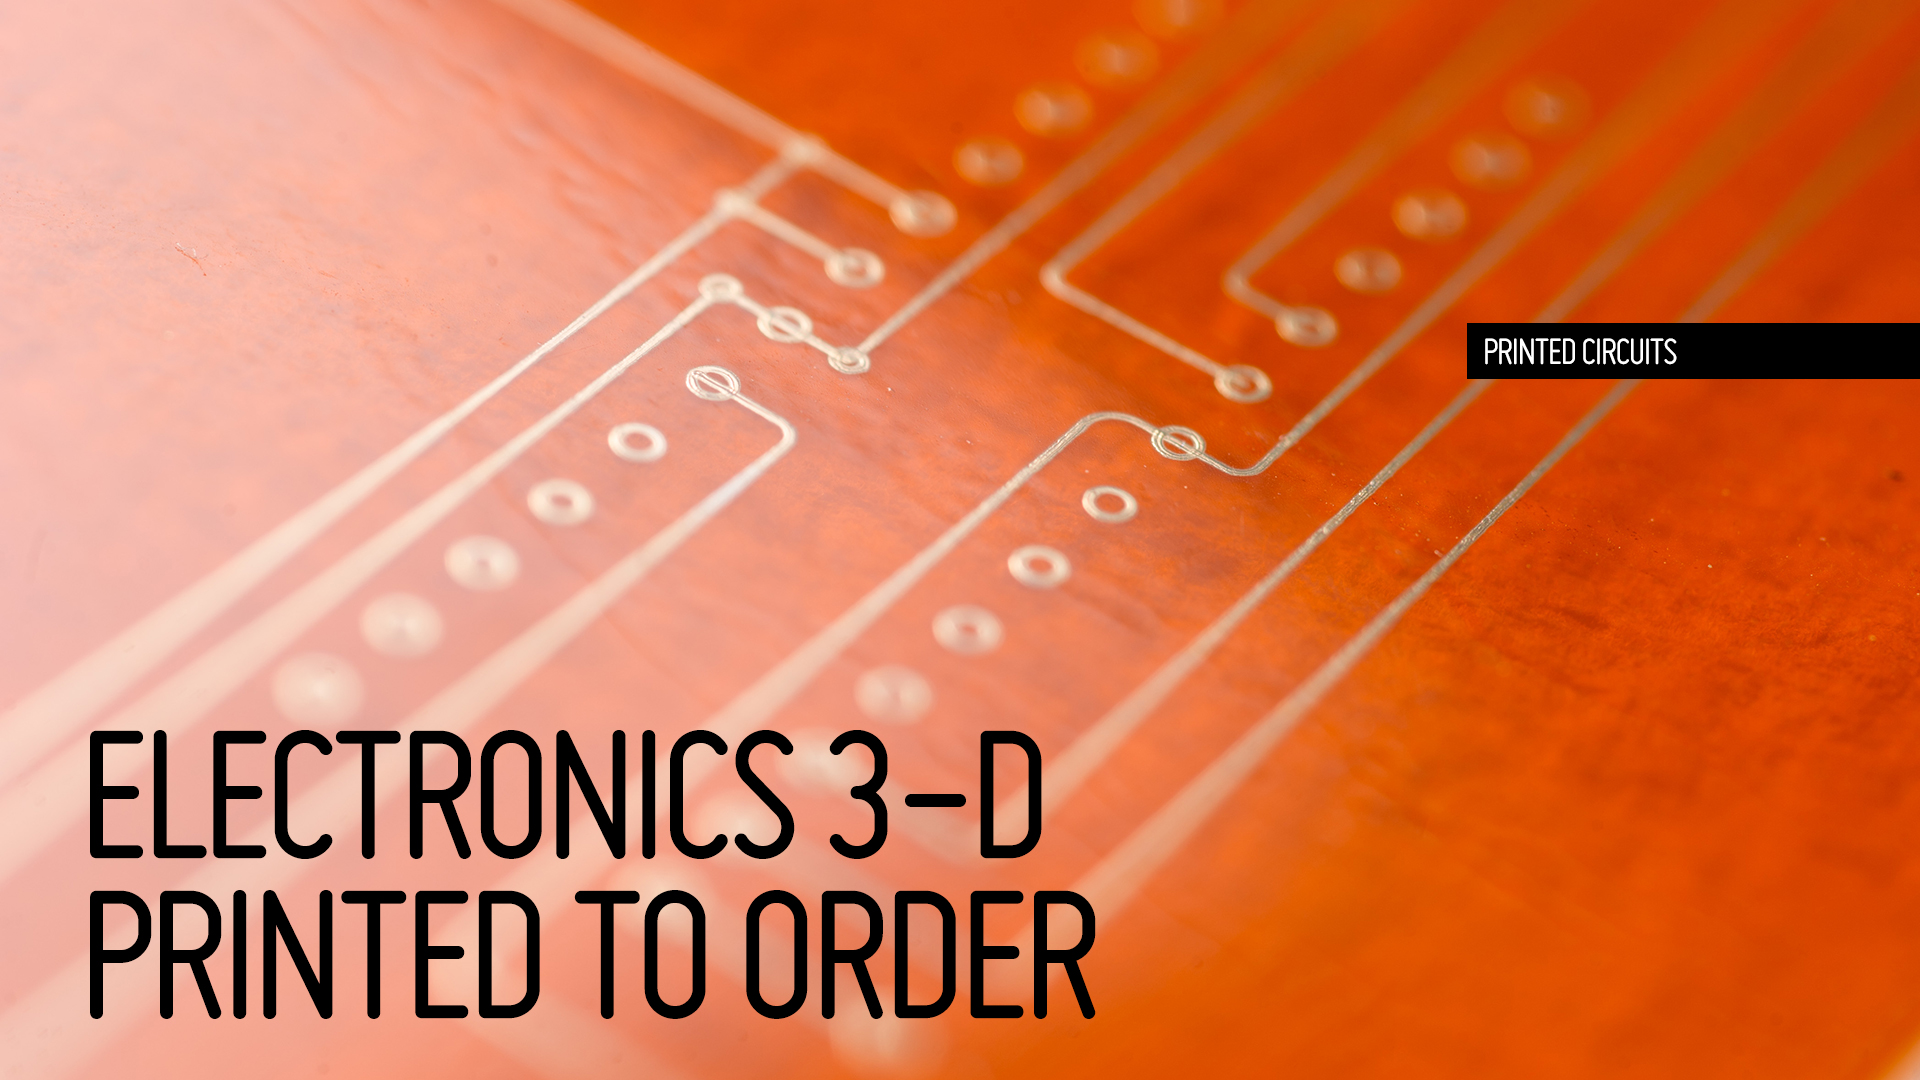 ELECTRONICS 3-D PRINTED TO ORDER